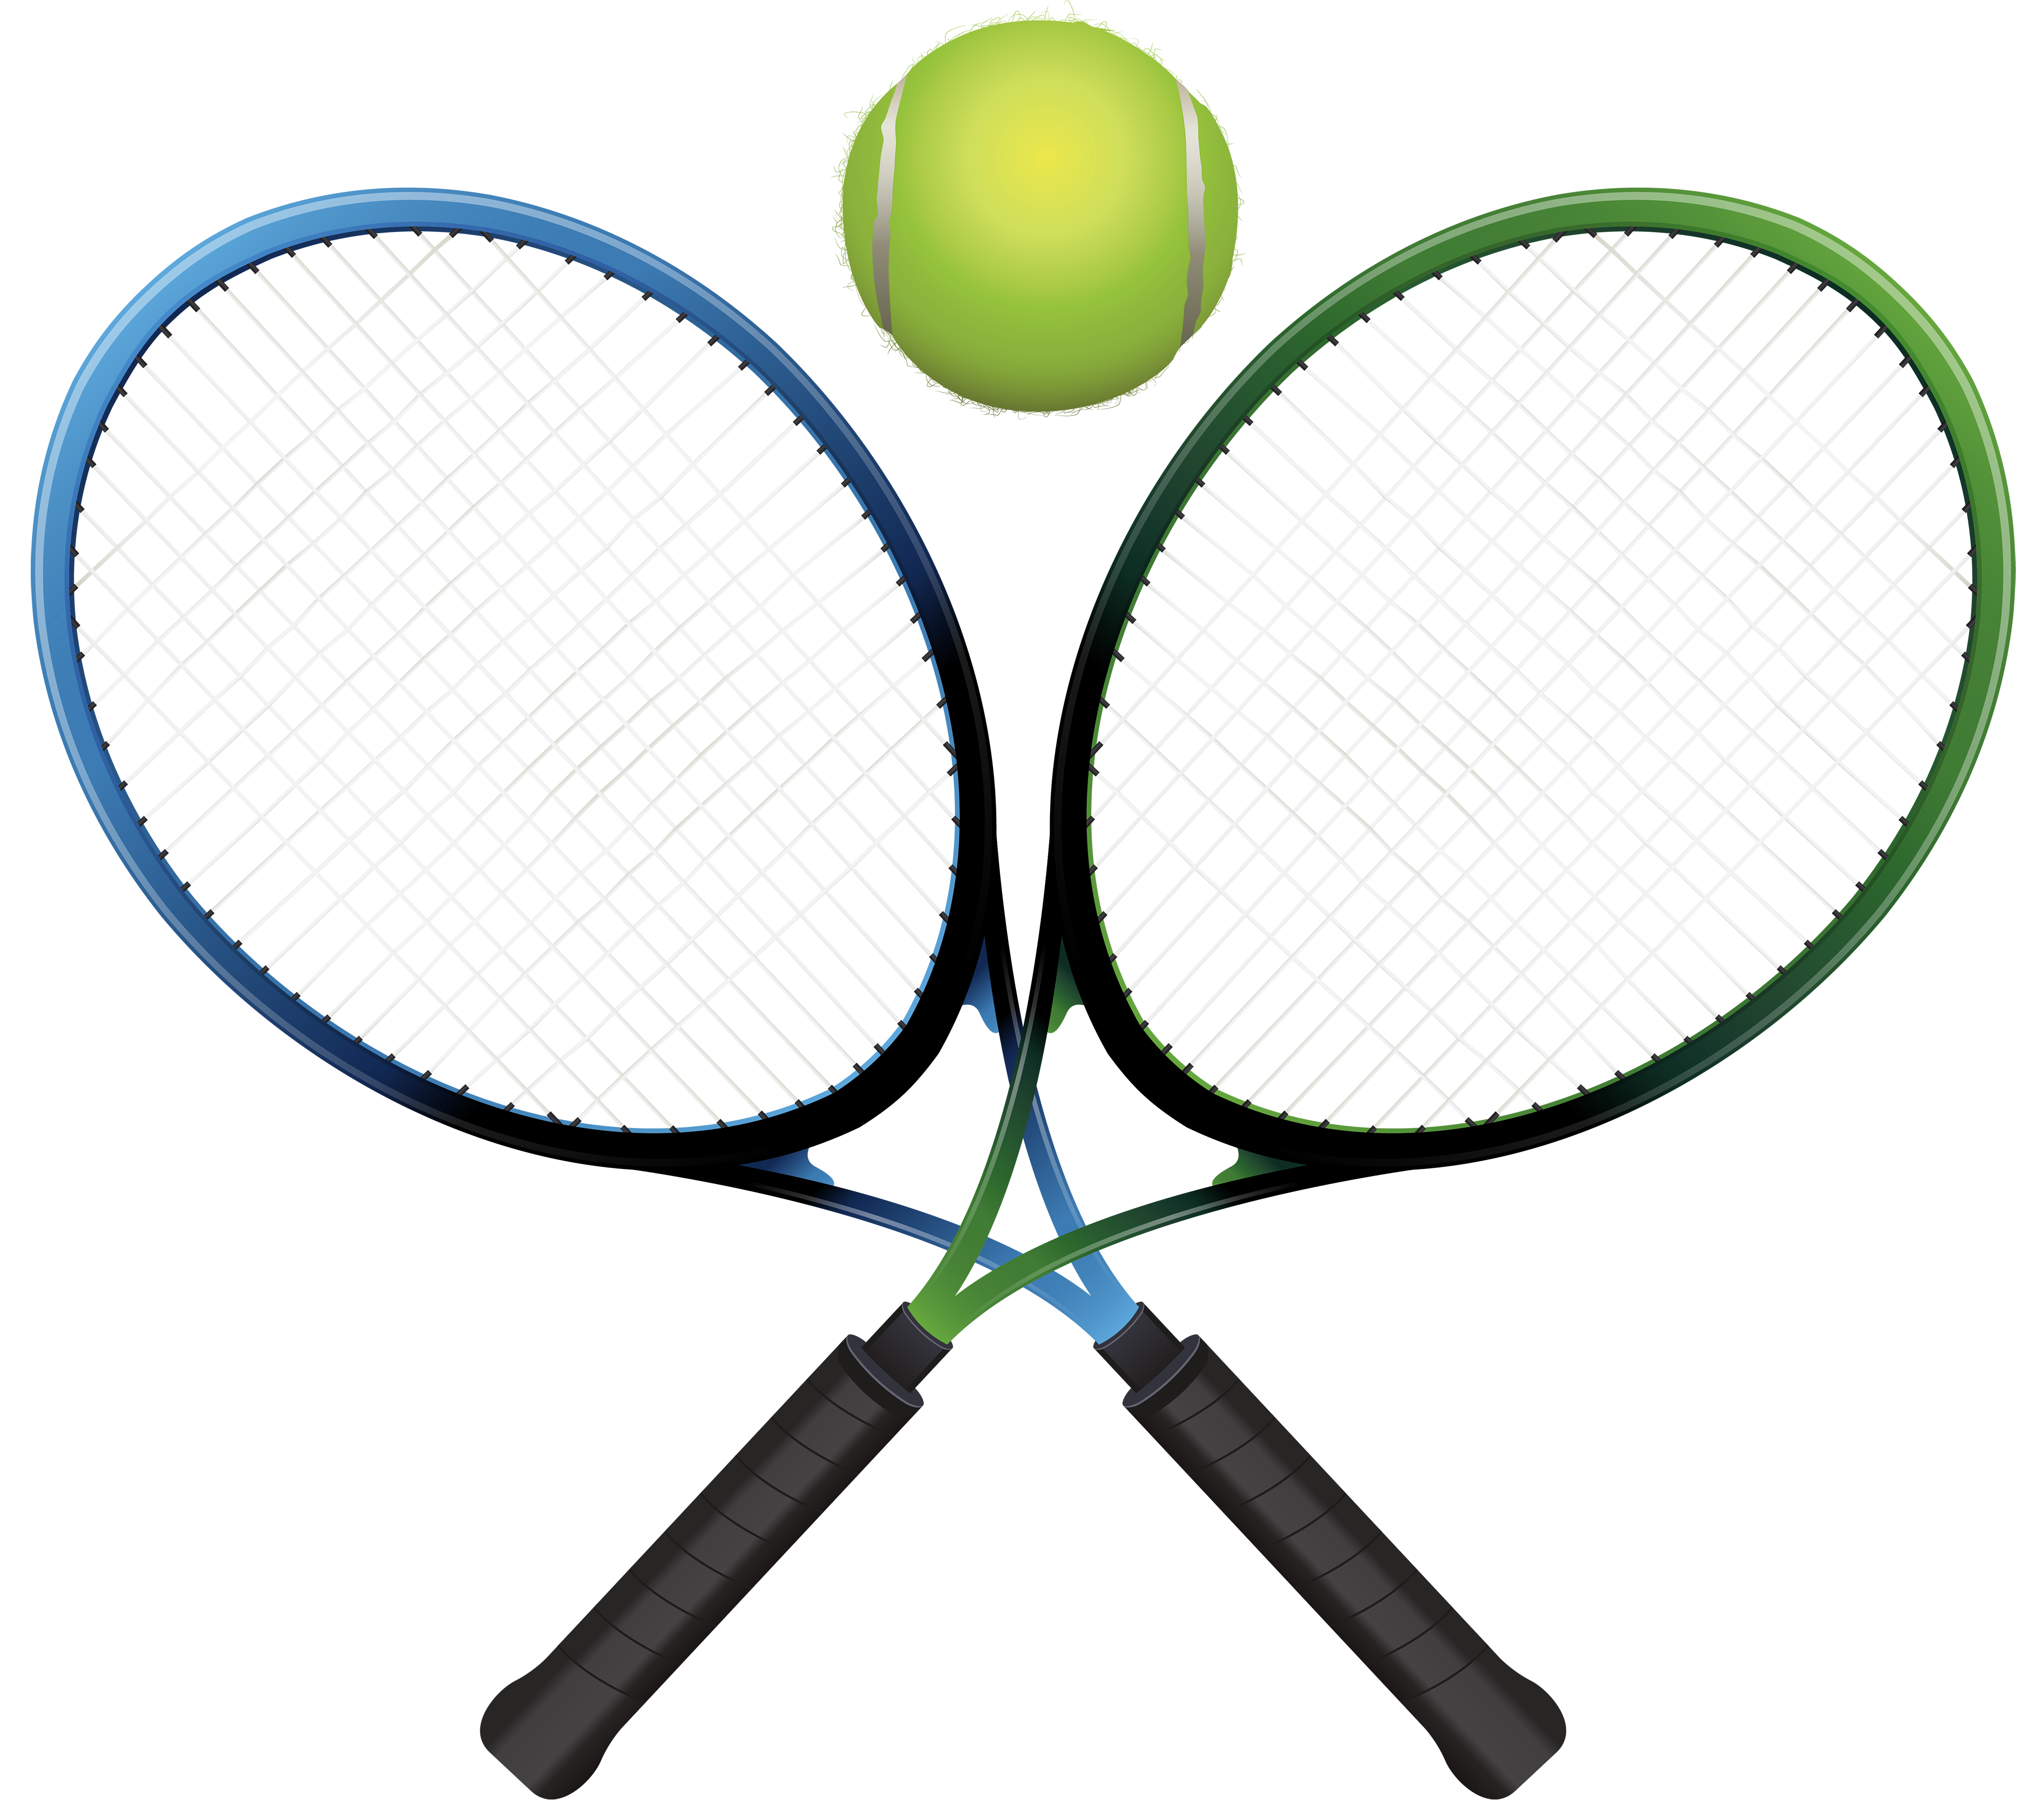 4000x3559 Tennis Clip Art Crab Free Clipart Images Clipartcow 2